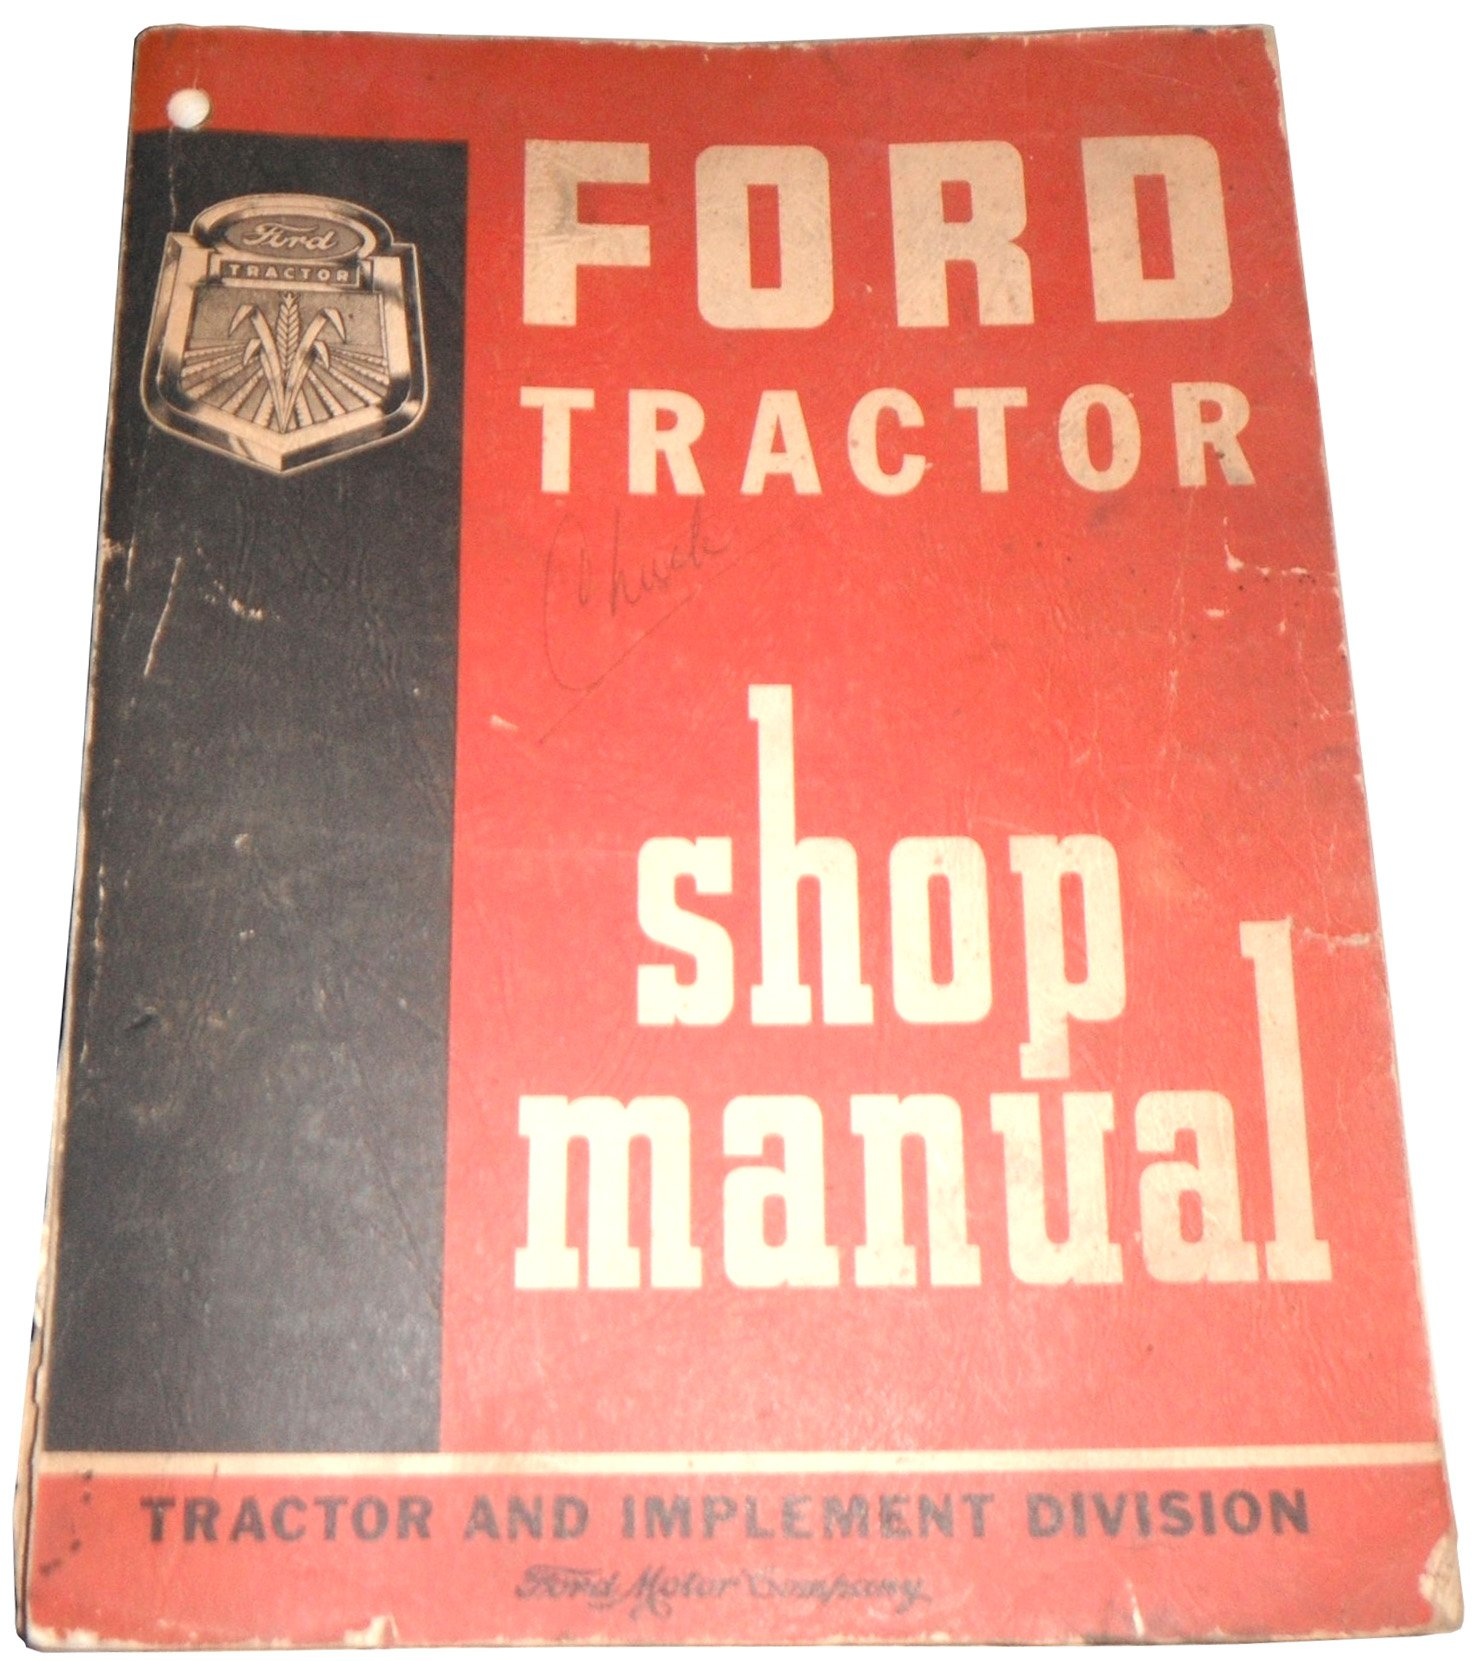 Ford Tractor Shop Manual for Series 600-700-800-900-601-701-801-901-1801:  FORD MOTOR COMPANY: Amazon.com: Books